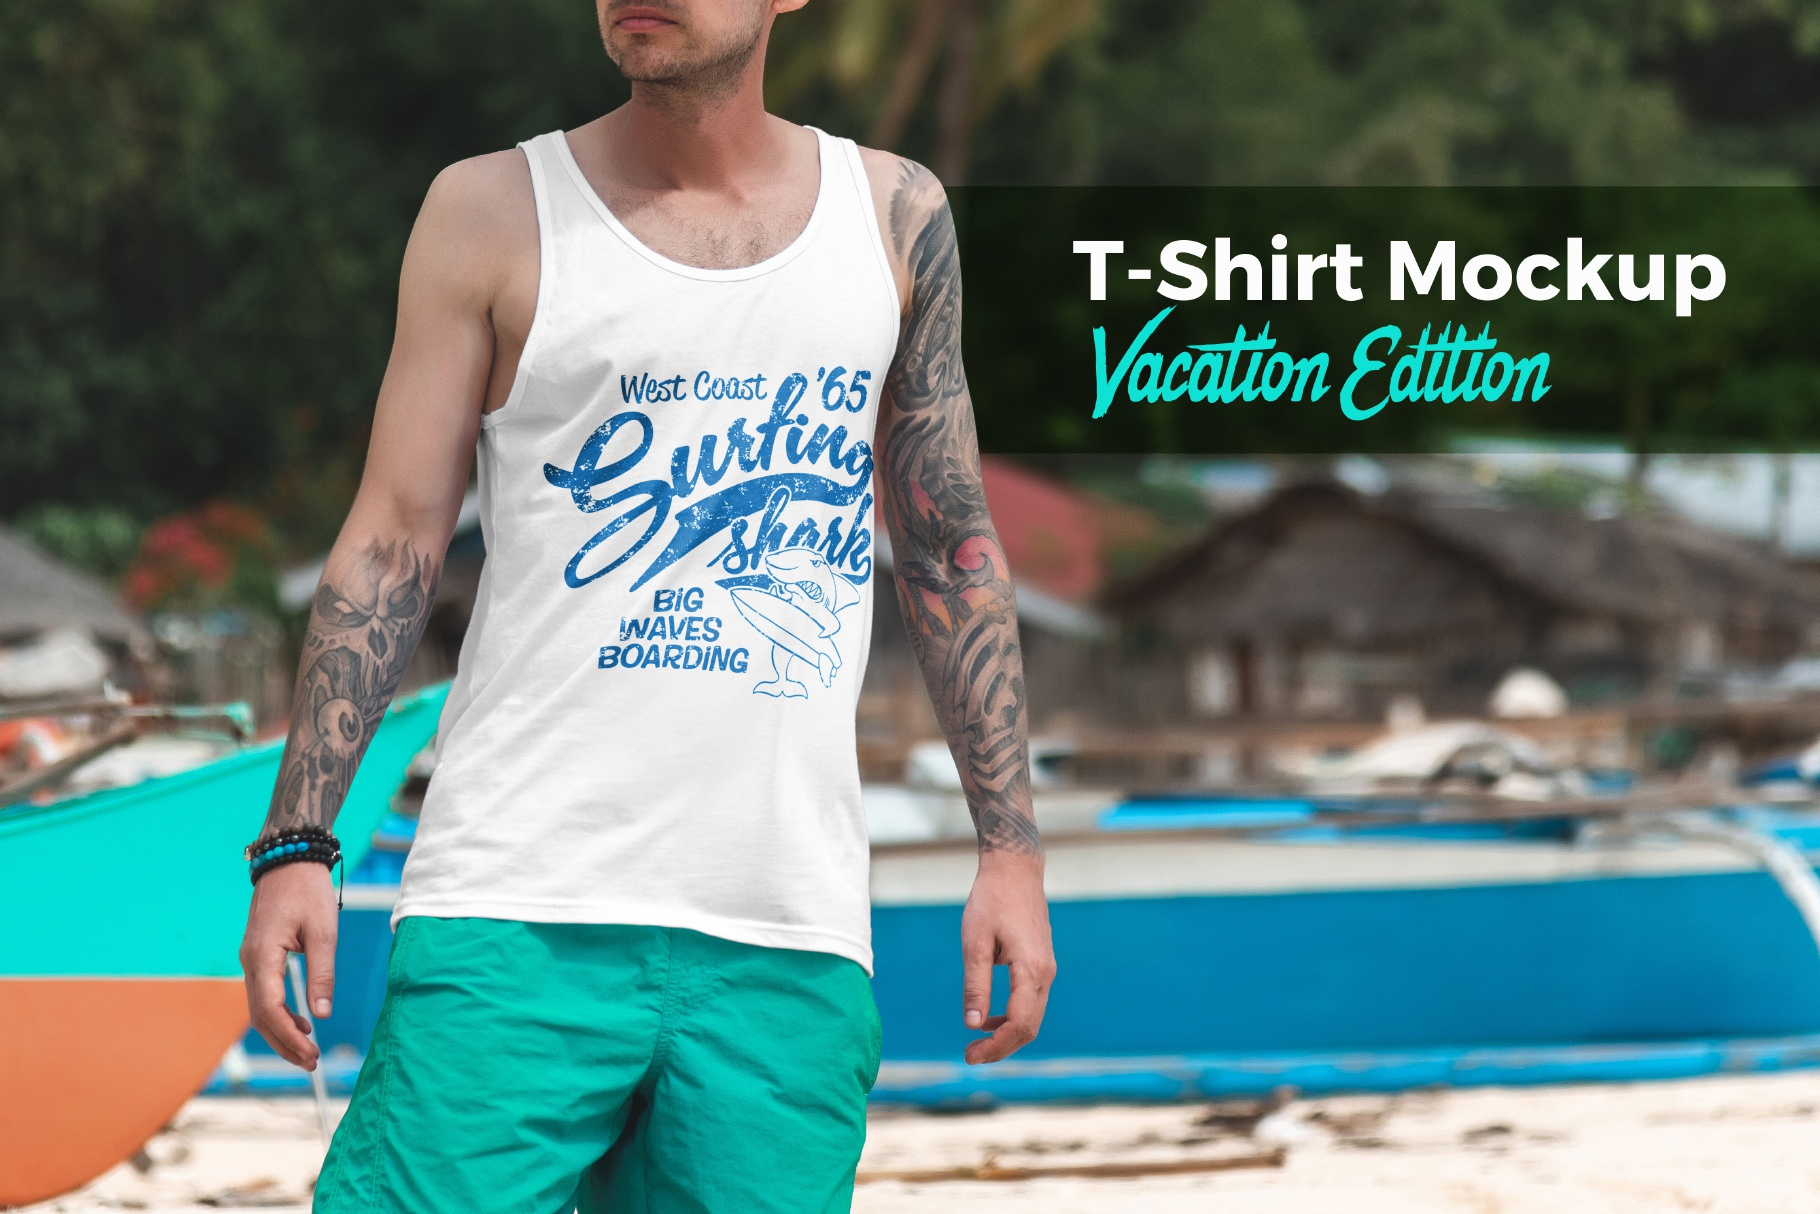 00 t shirt mockup vacation edition